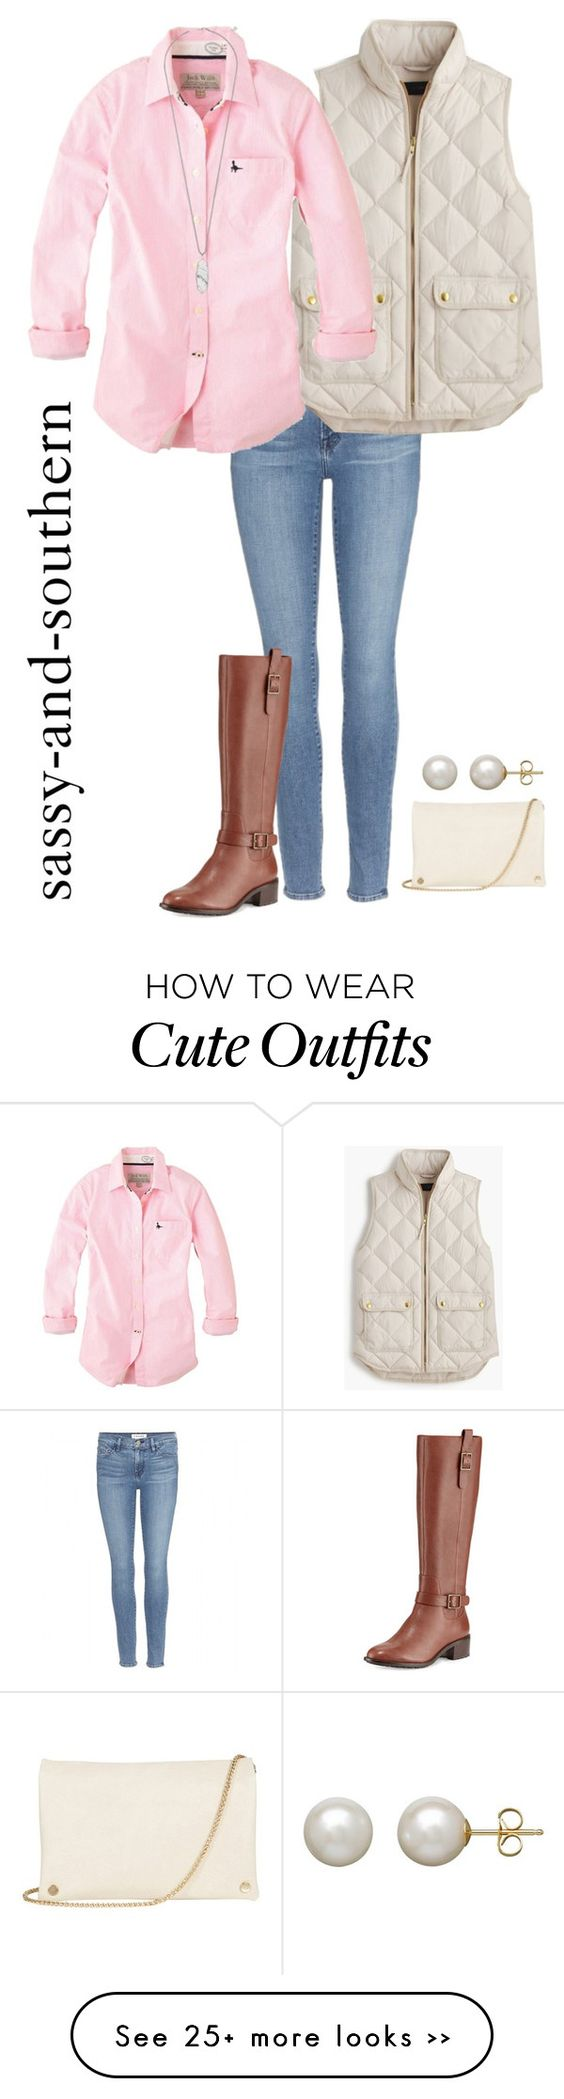 """""""cute fall outfit"""" by sassy-and-southern on Polyvore featuring Frame Denim, J.Crew, Jack Wills, Cole Haan, Kendra Scott, Honora and Oasis"""